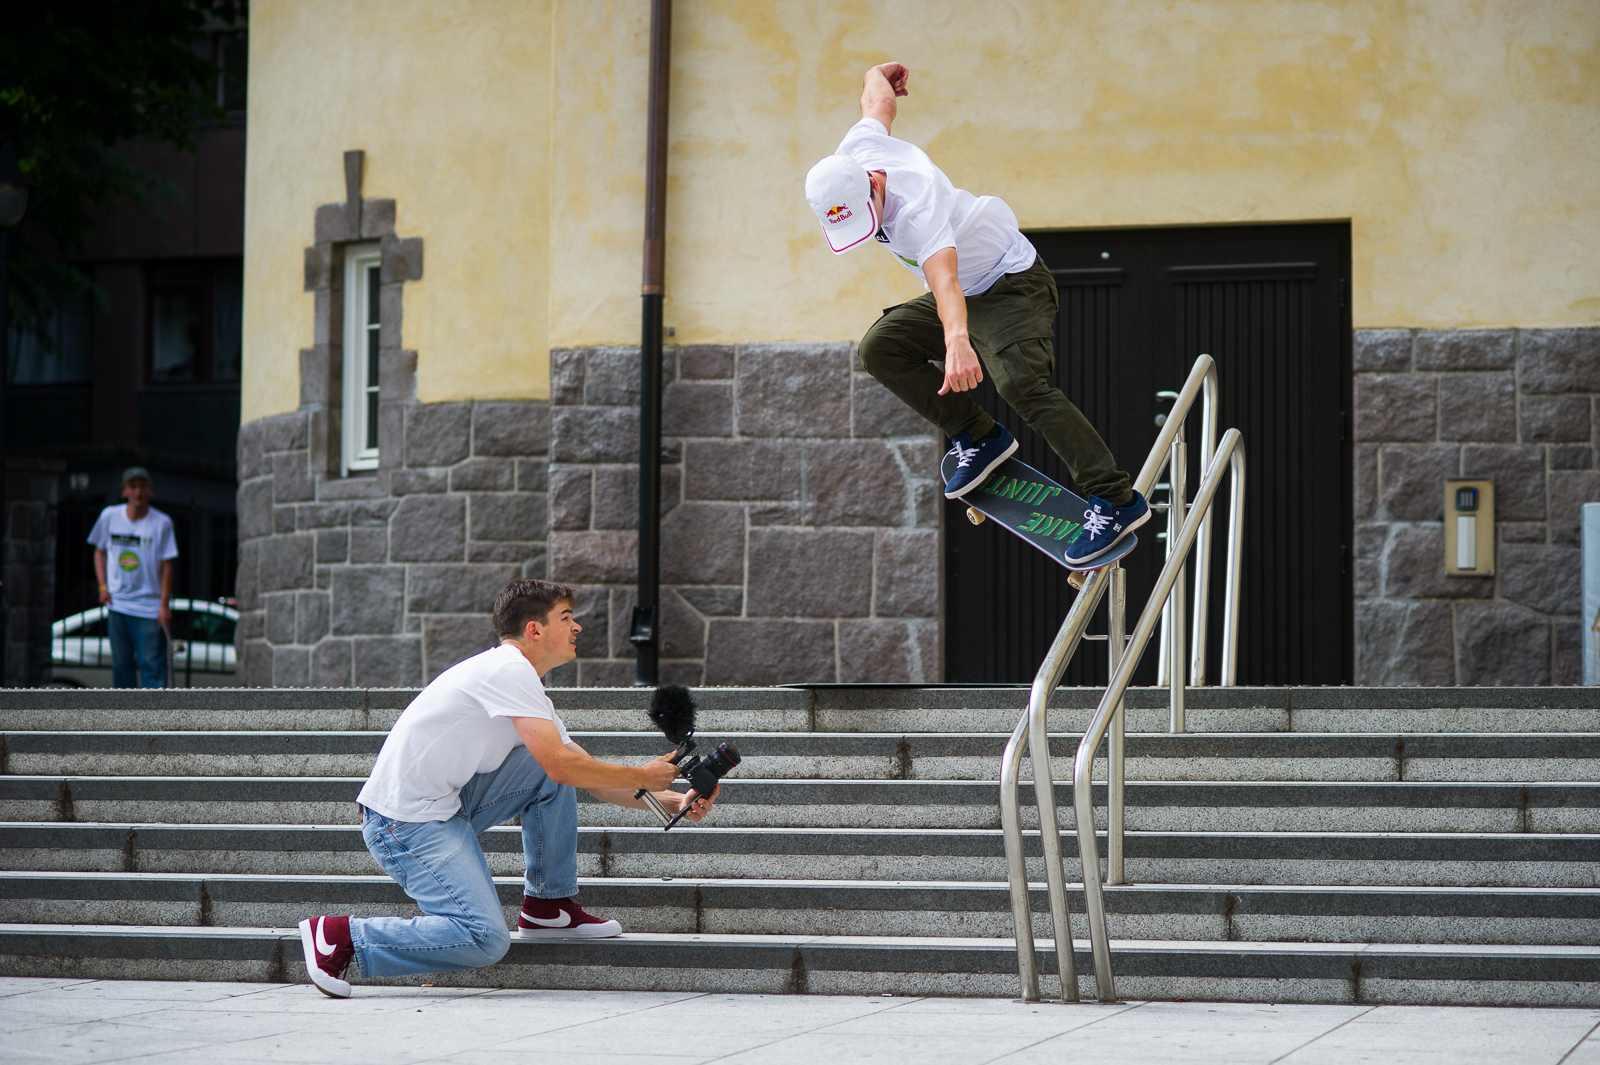 Gard Hvaara - BS Crooks